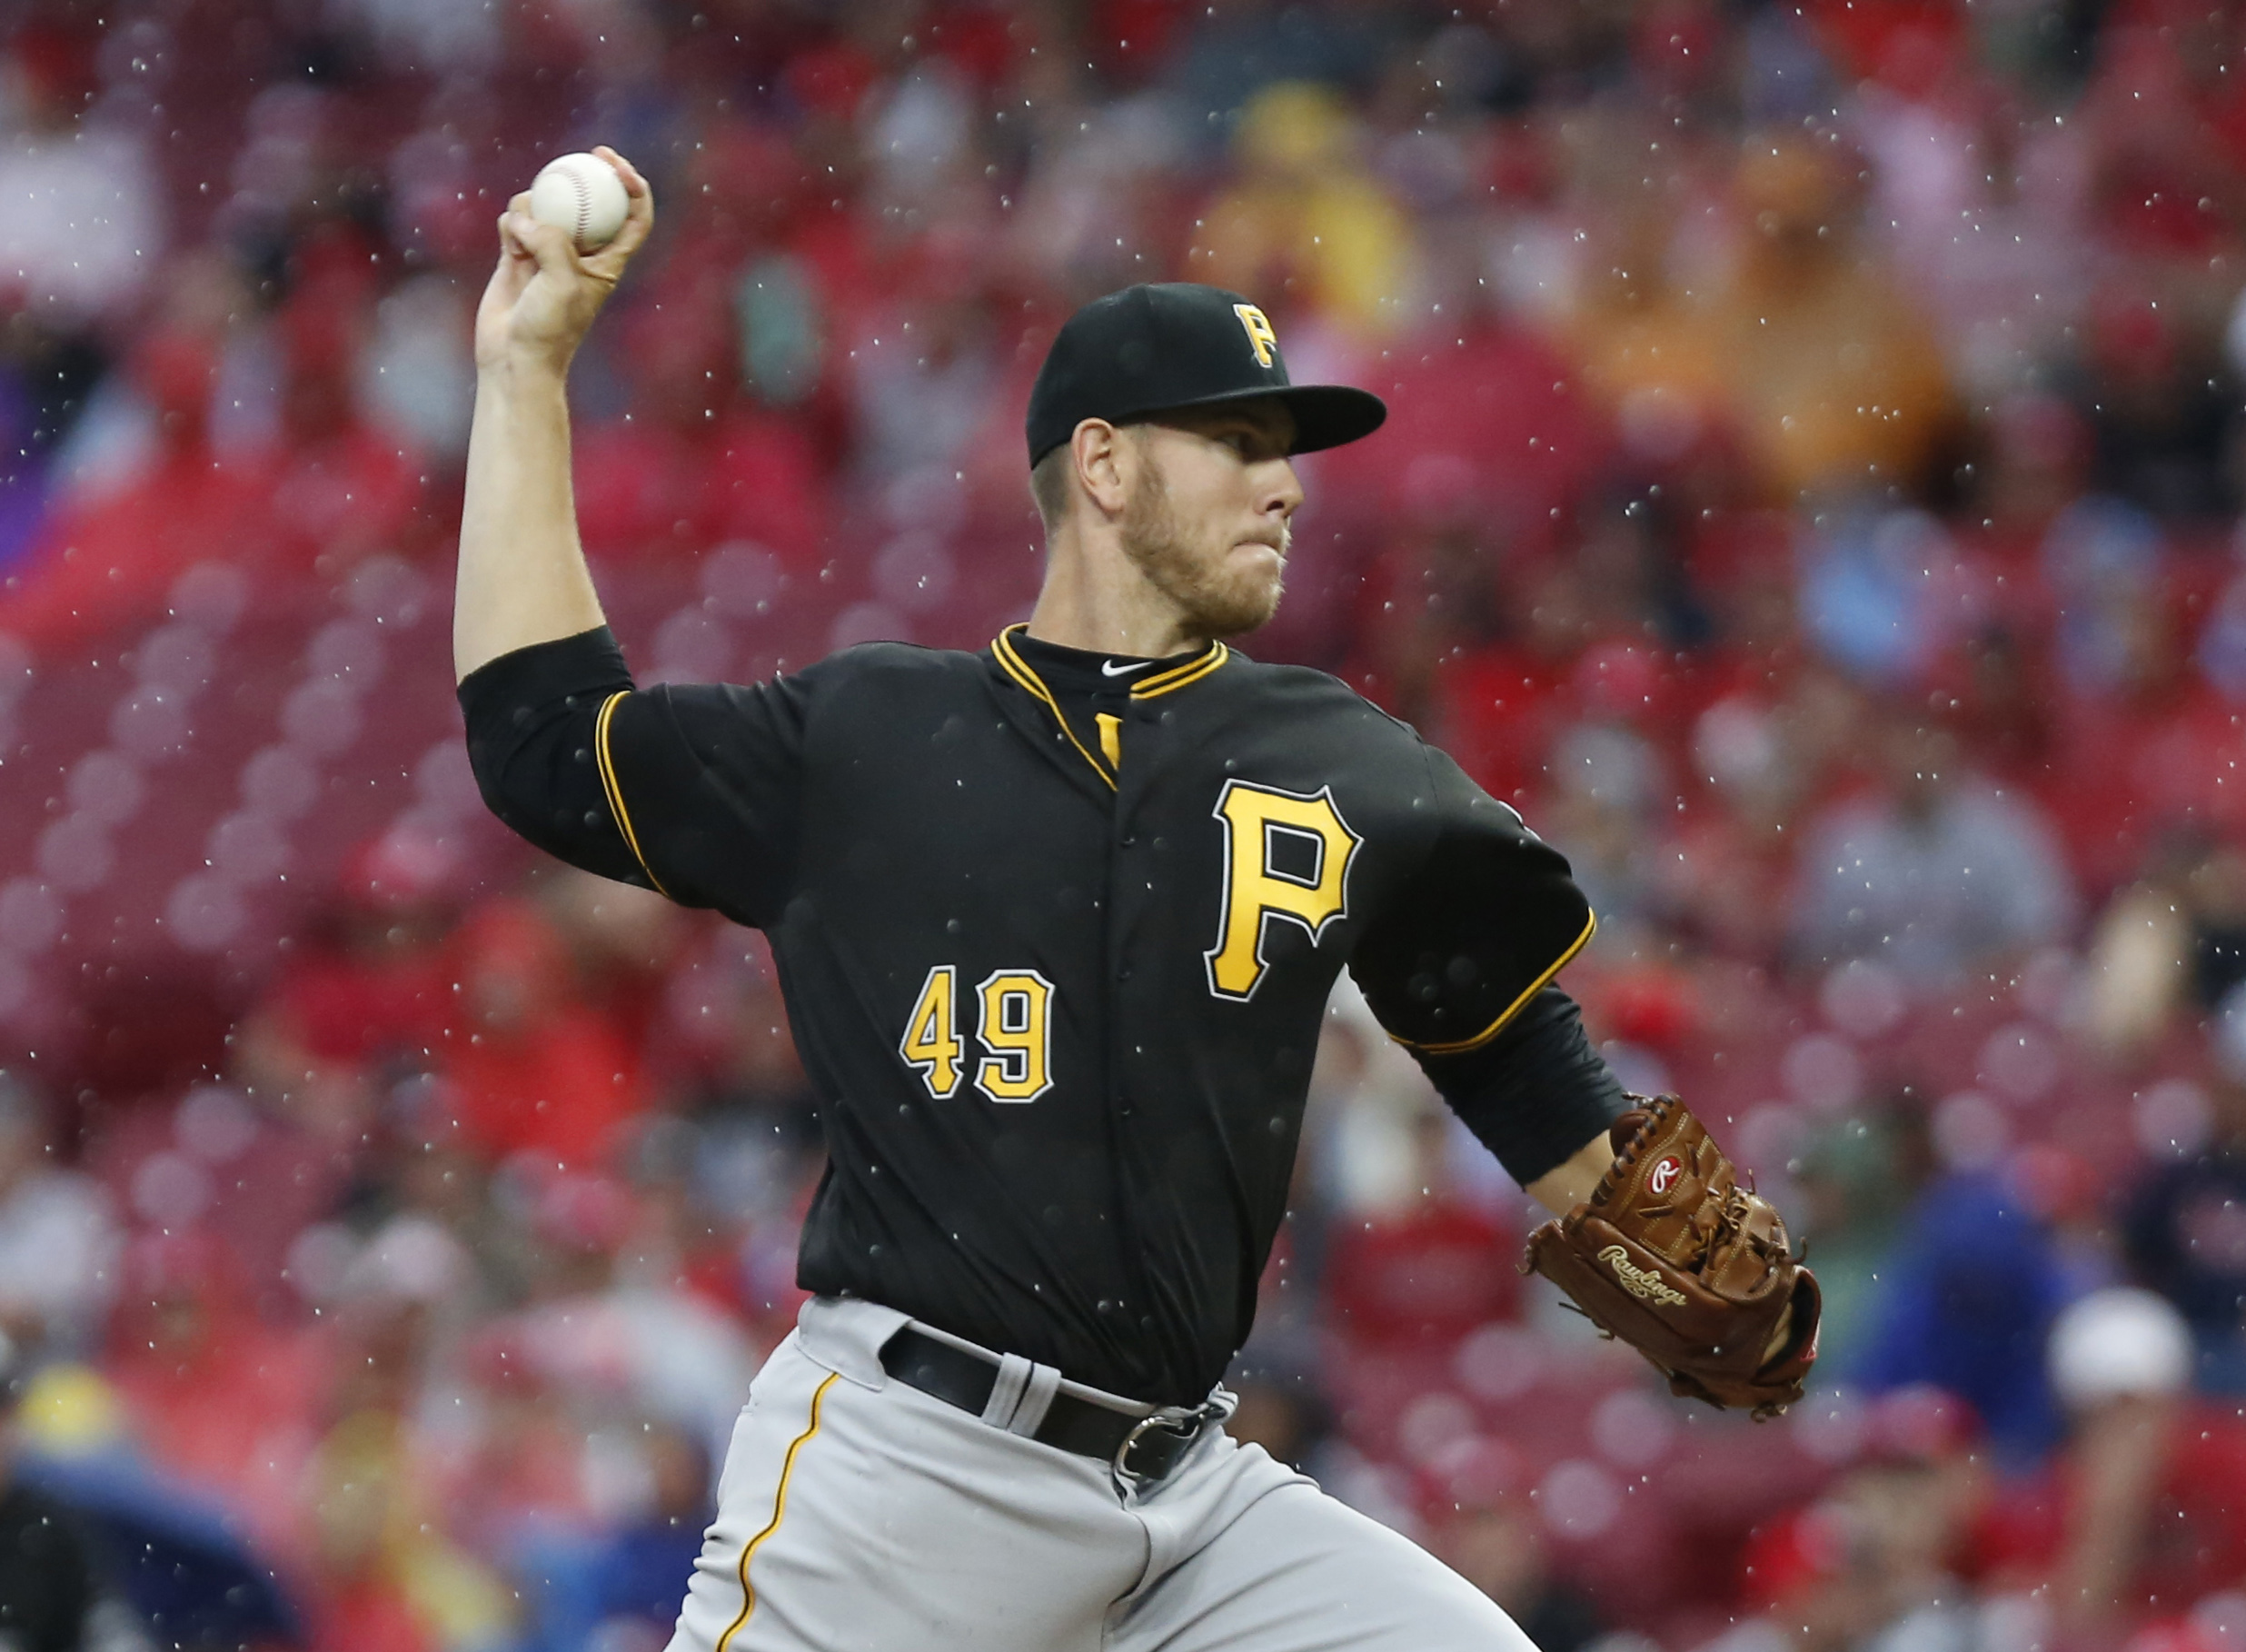 Does Nick Kingham deserve to stay in the Pirates rotation?